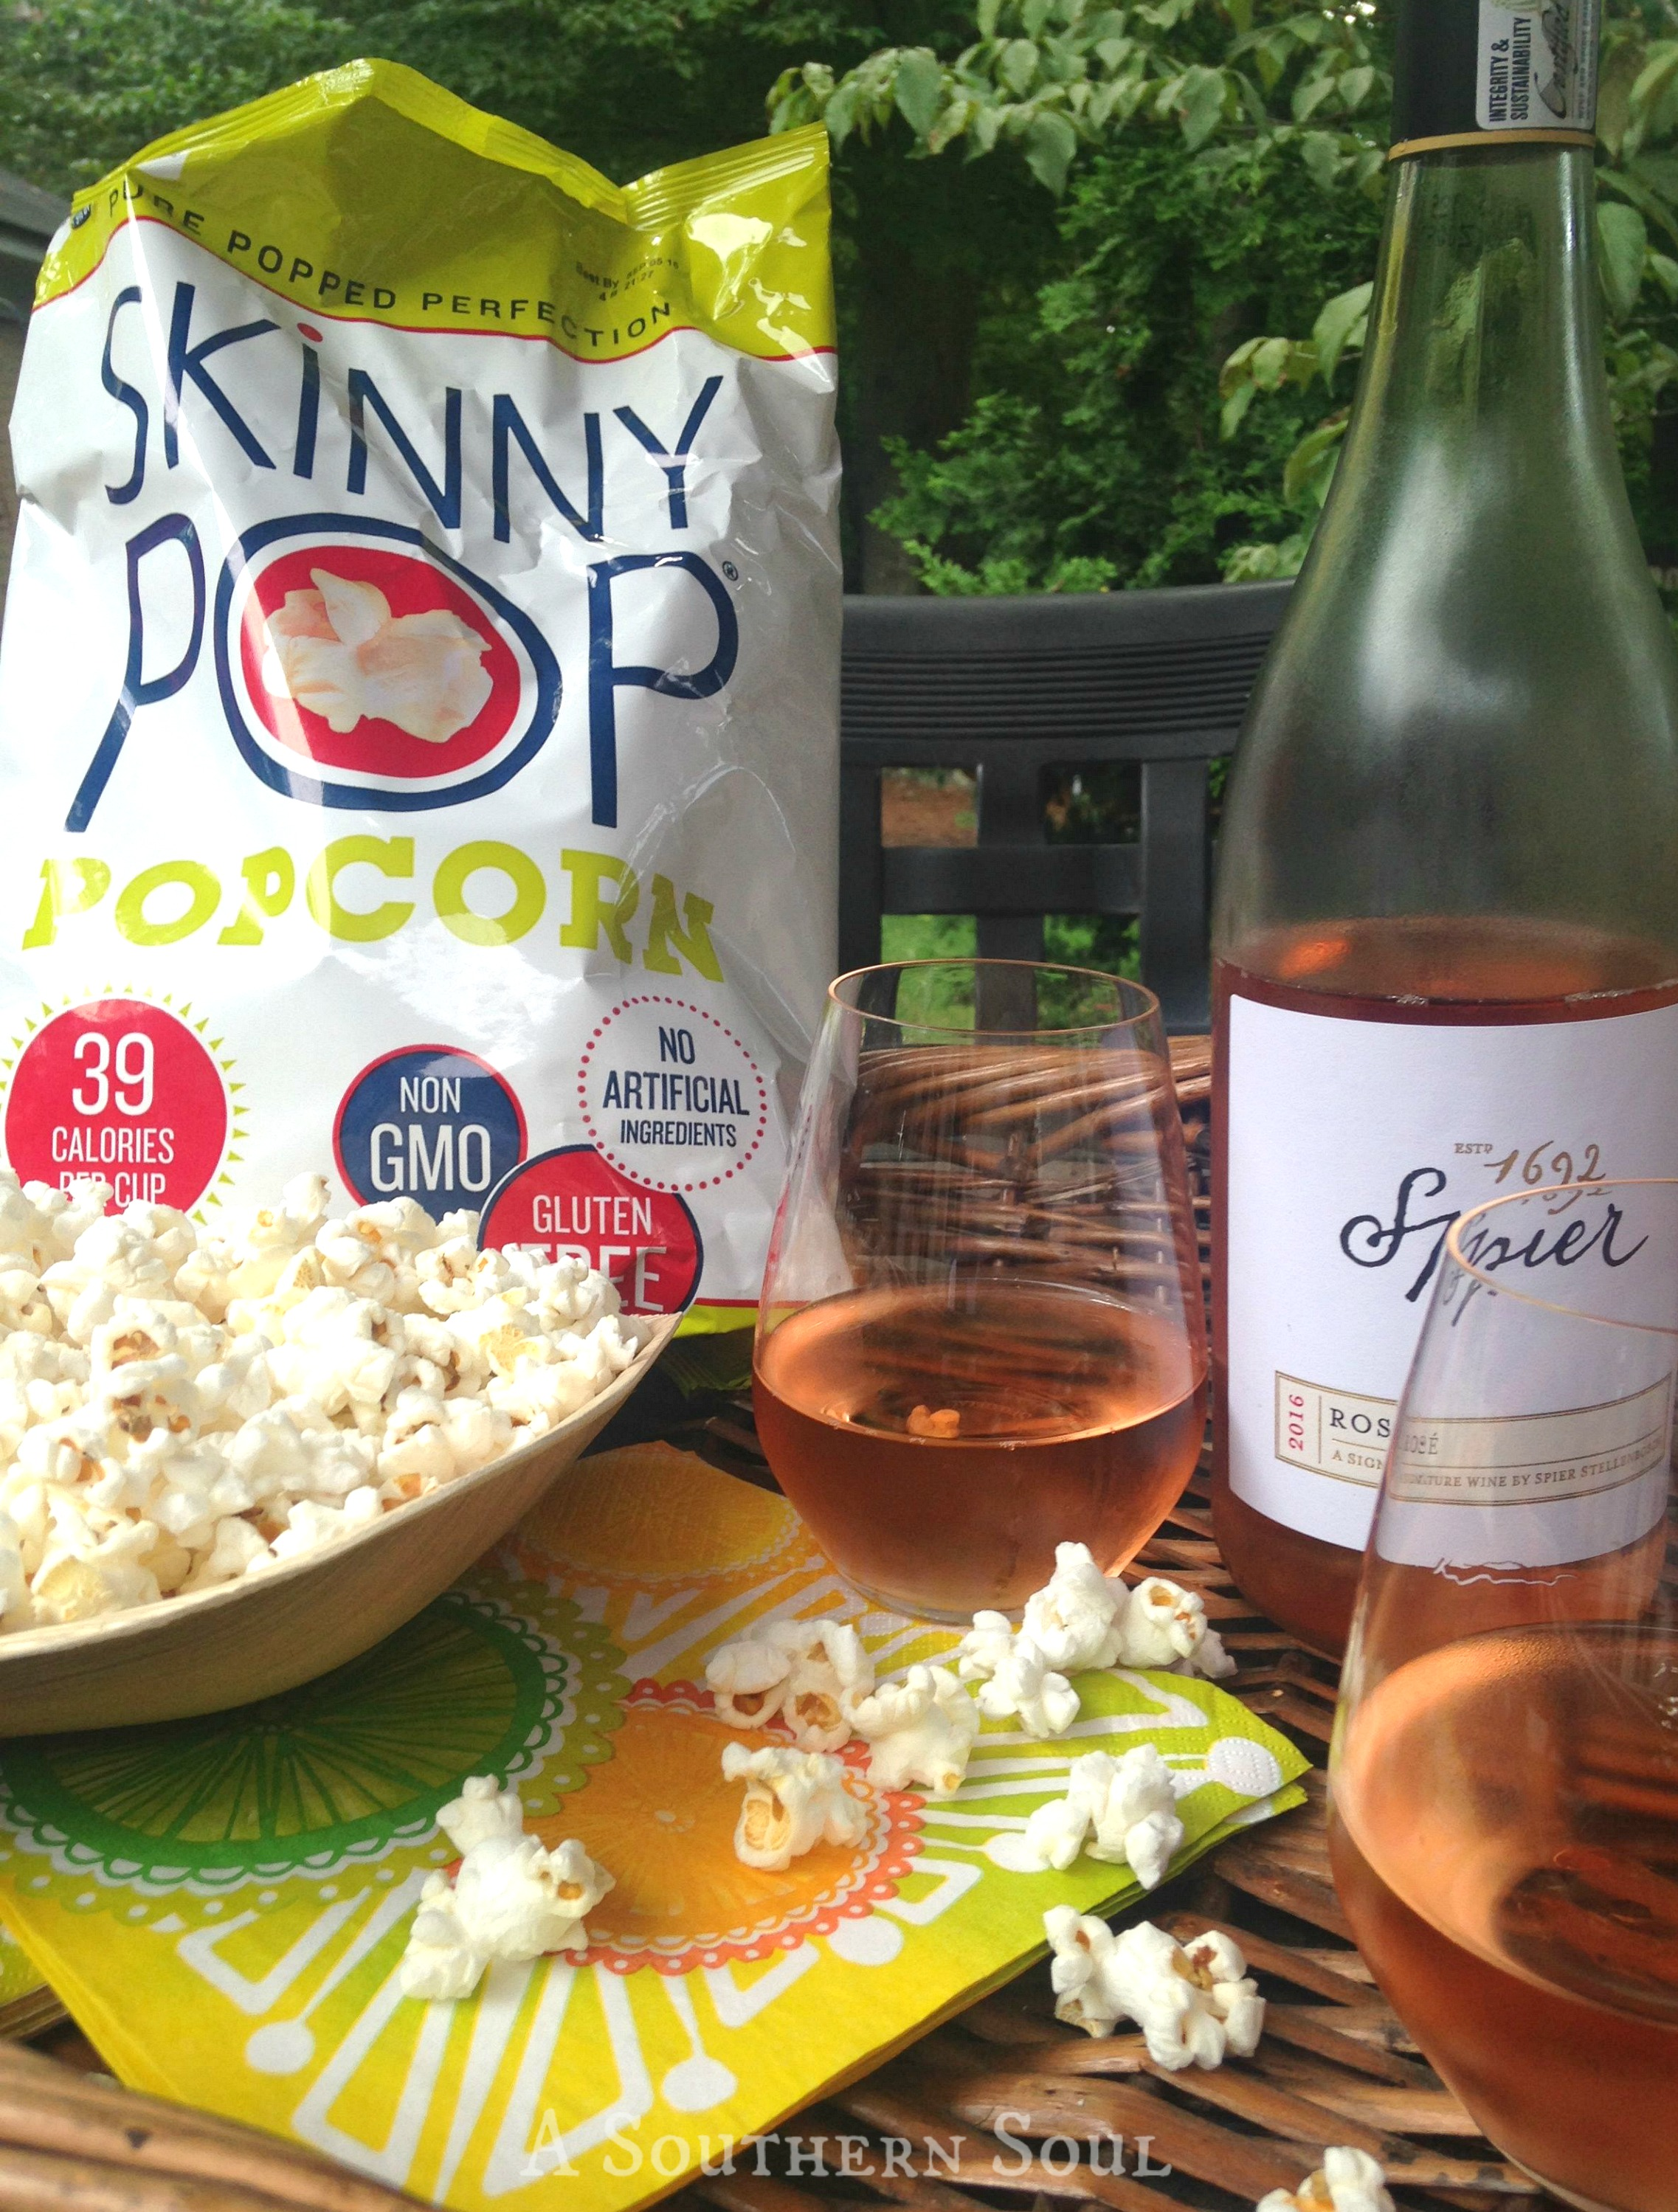 skinny pop & wineWM